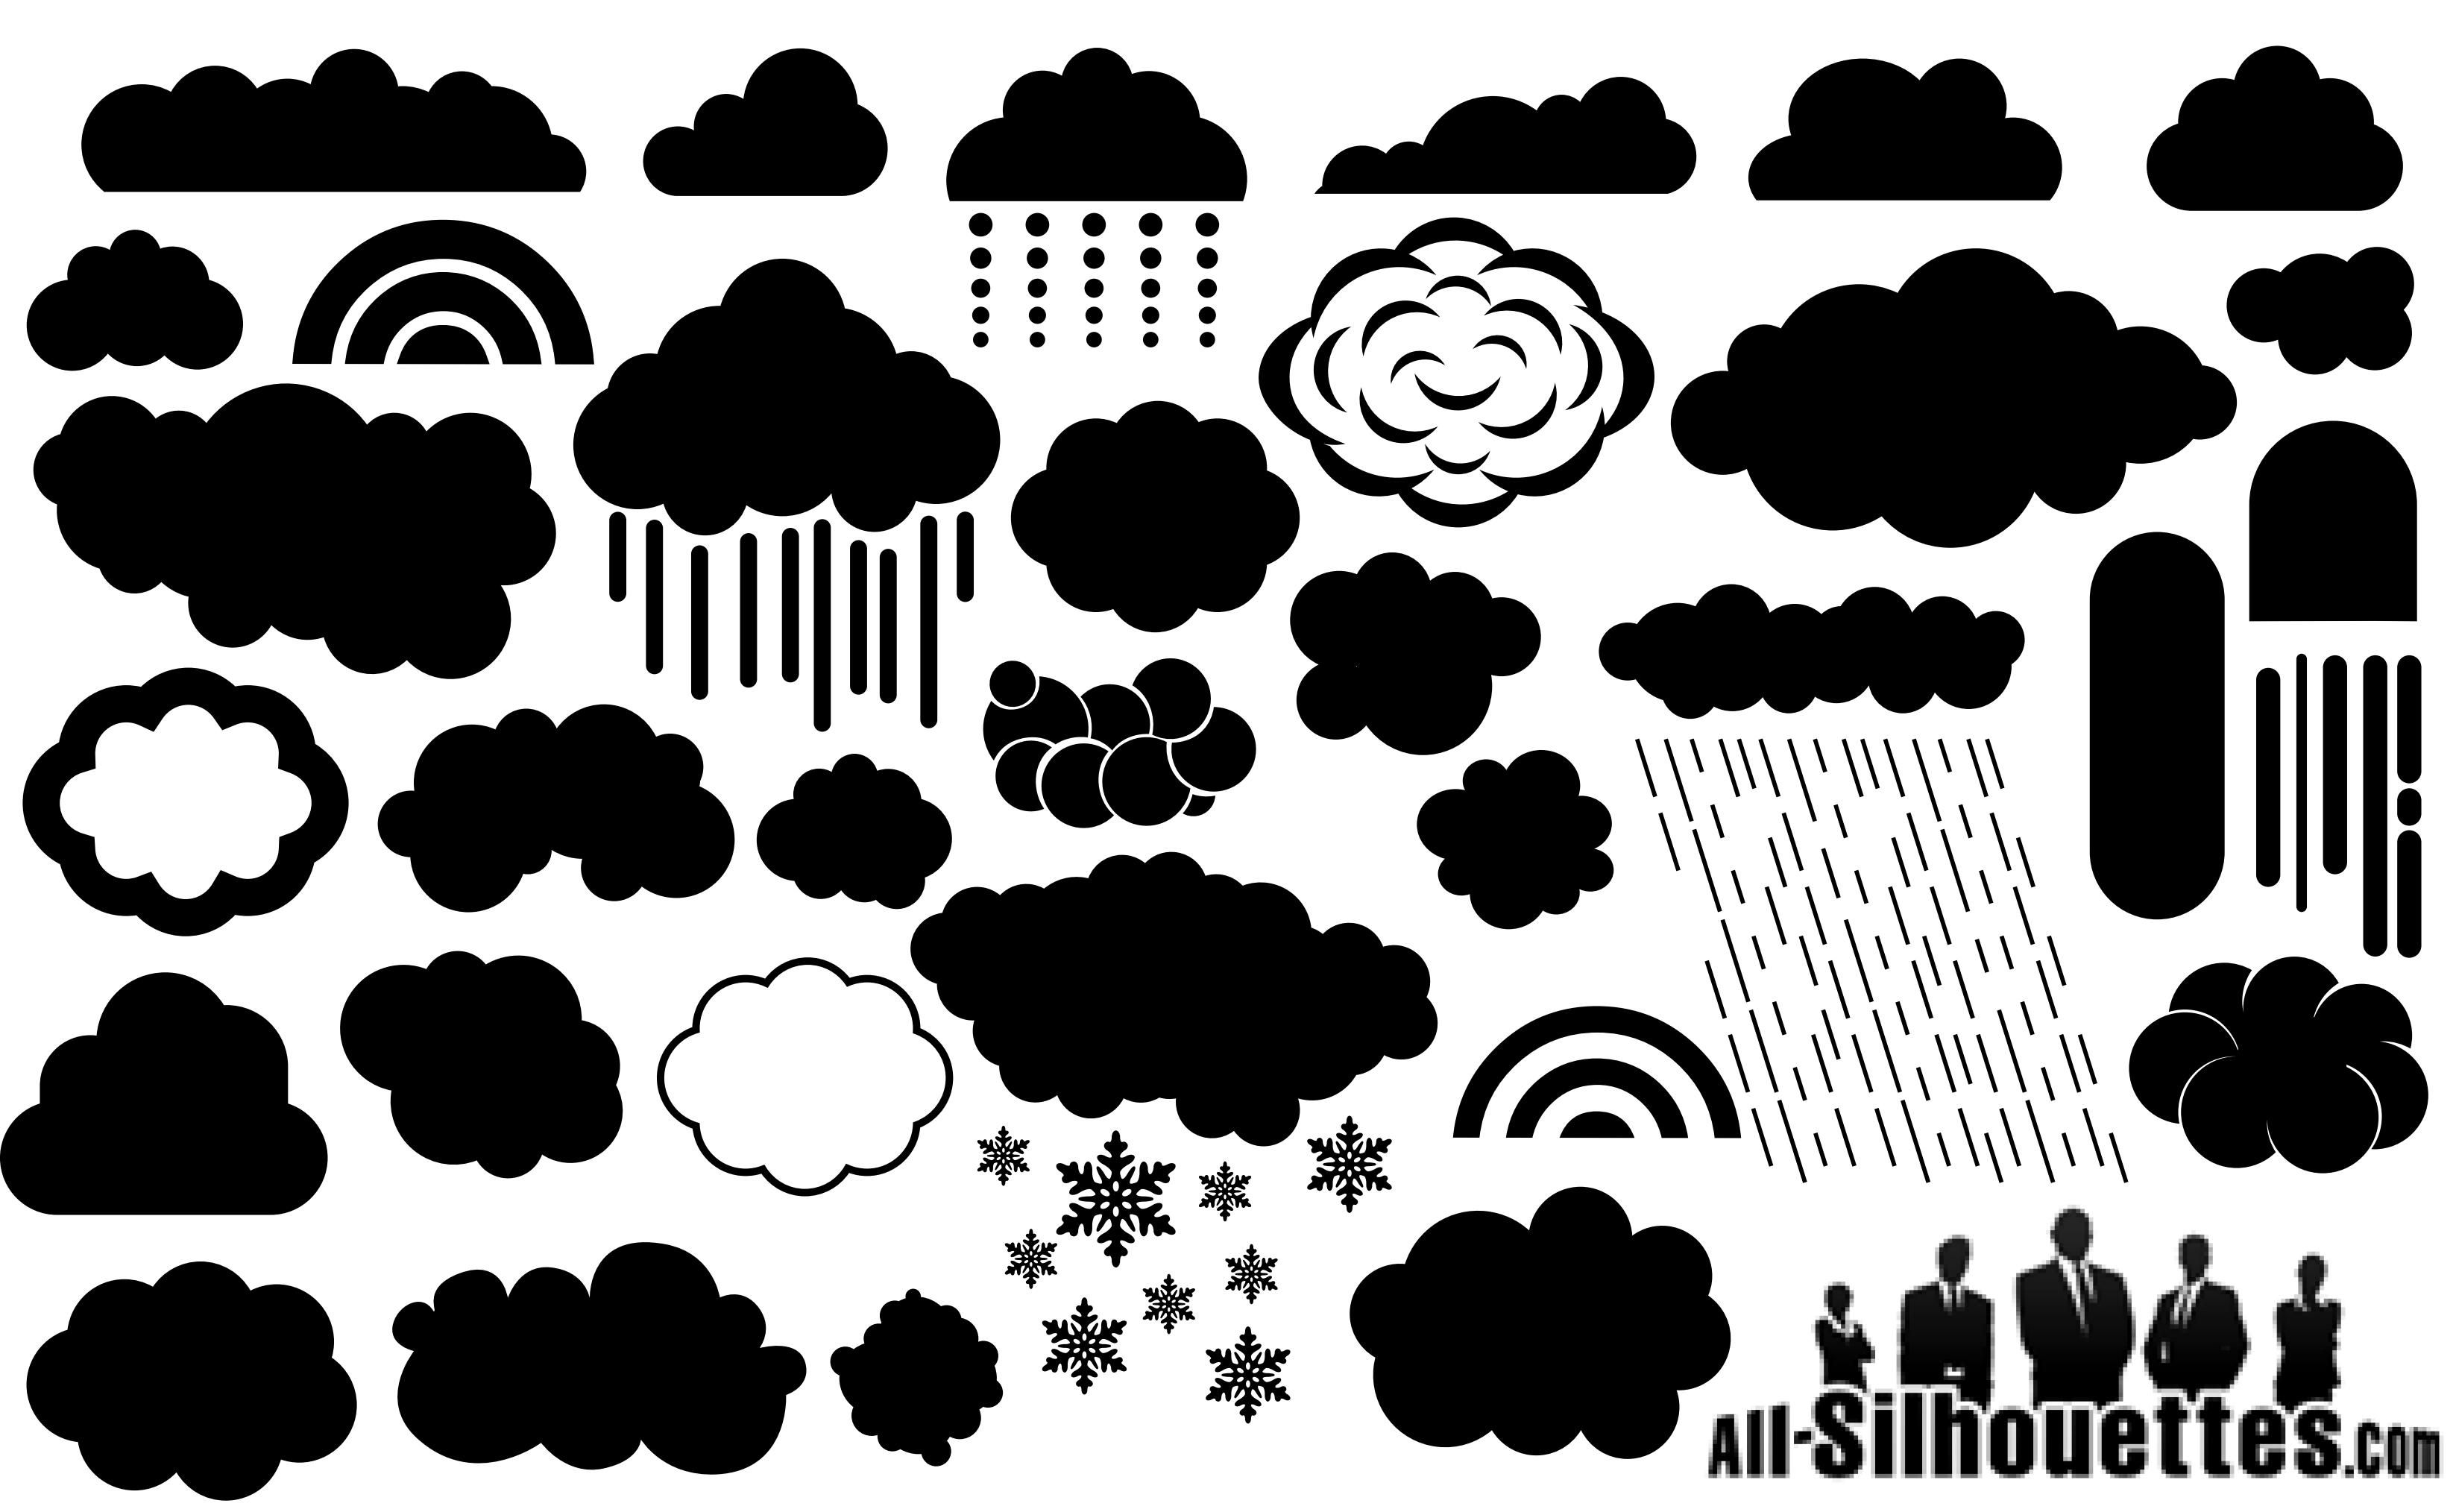 Cloud Silhouette Vector EPS Free Download, Logo, Icons